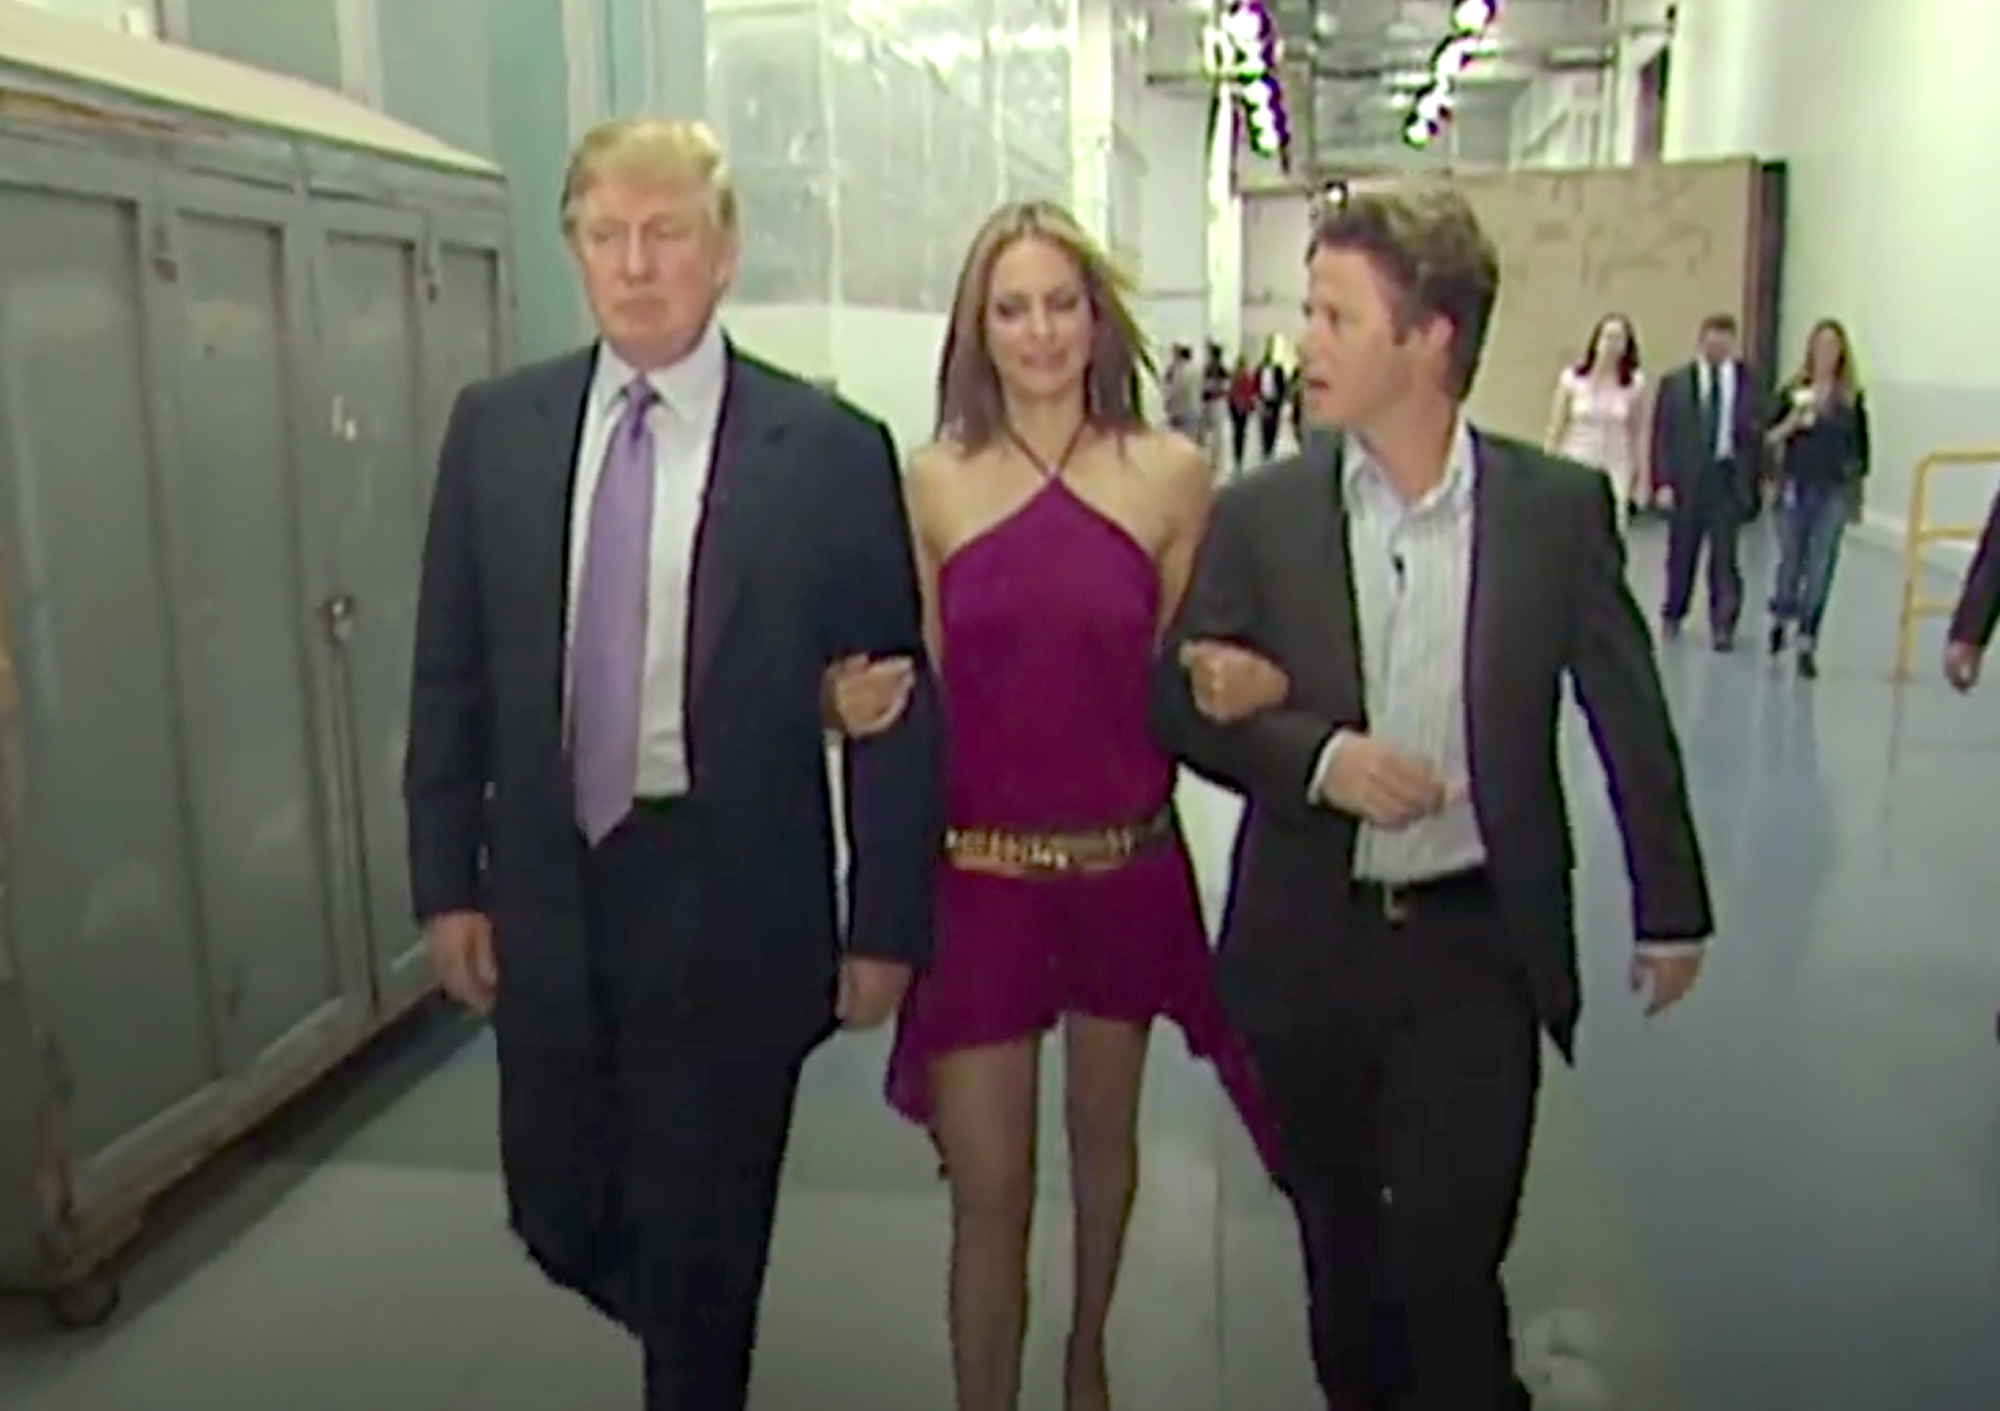 Trump recorded having extremely lewd conversation about women in 2005